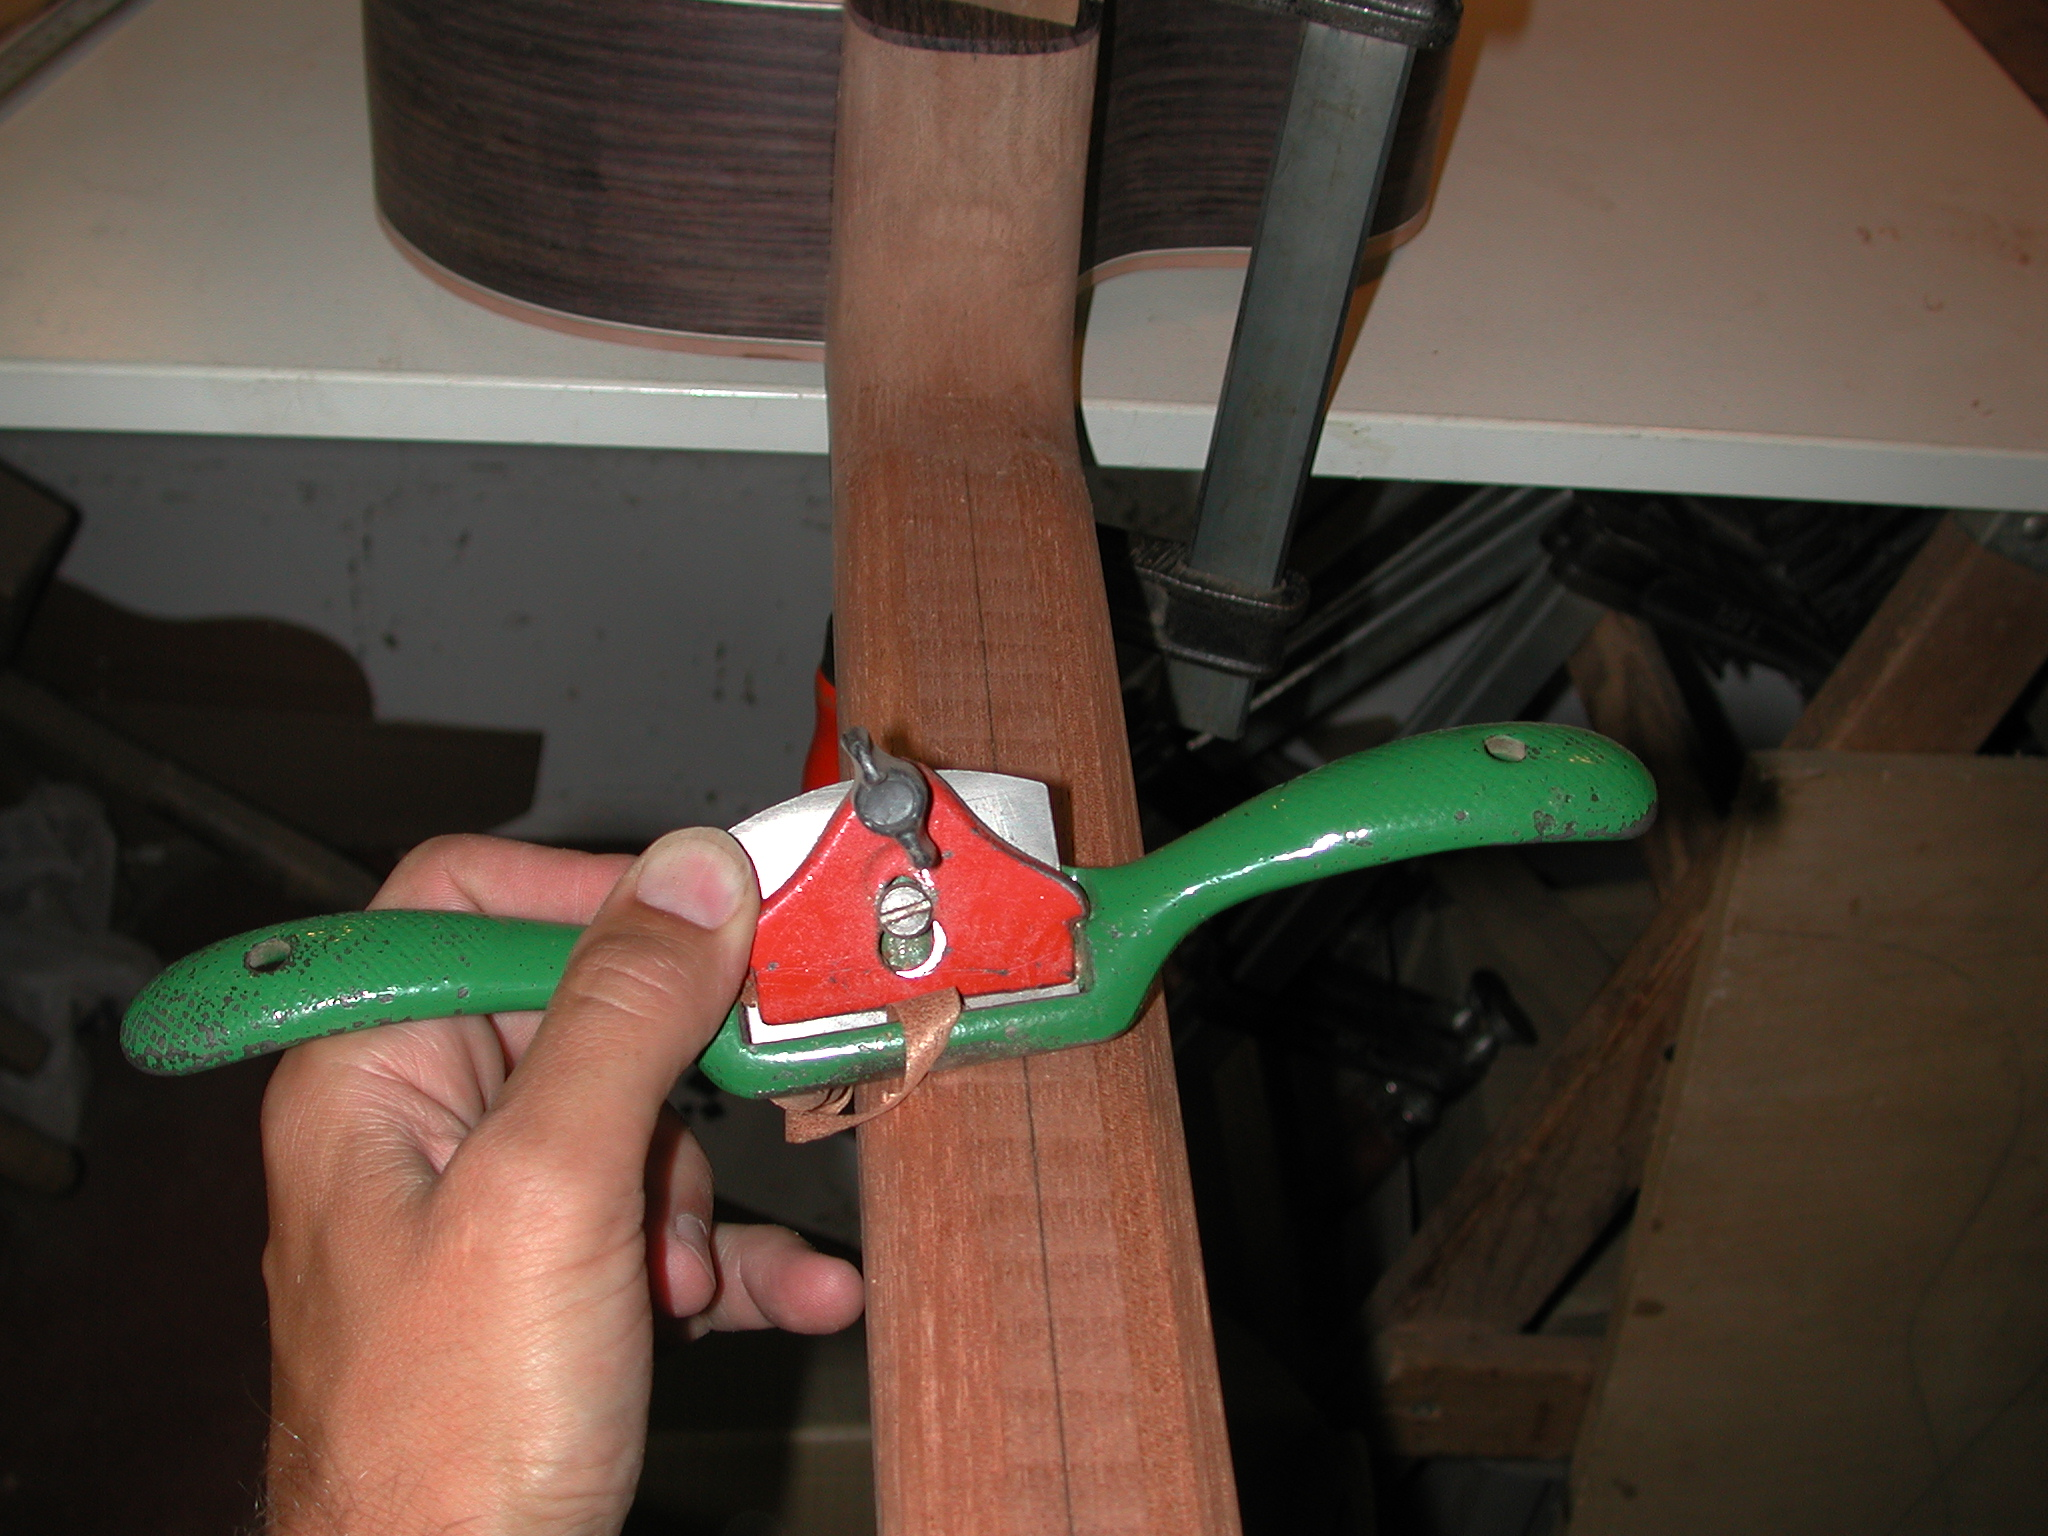 Neck: Shaping the neck roughly.